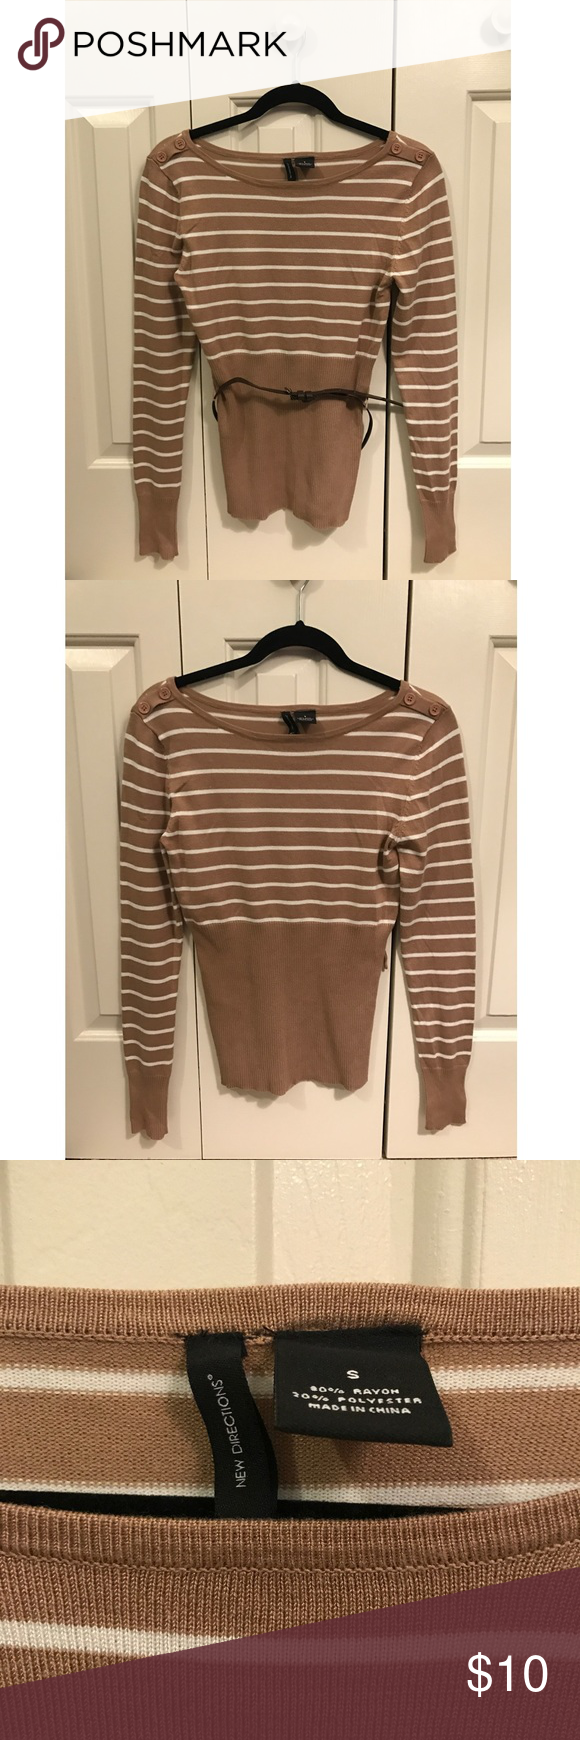 Brown/Tan and White Striped Sweater | Scoop neck and Brown